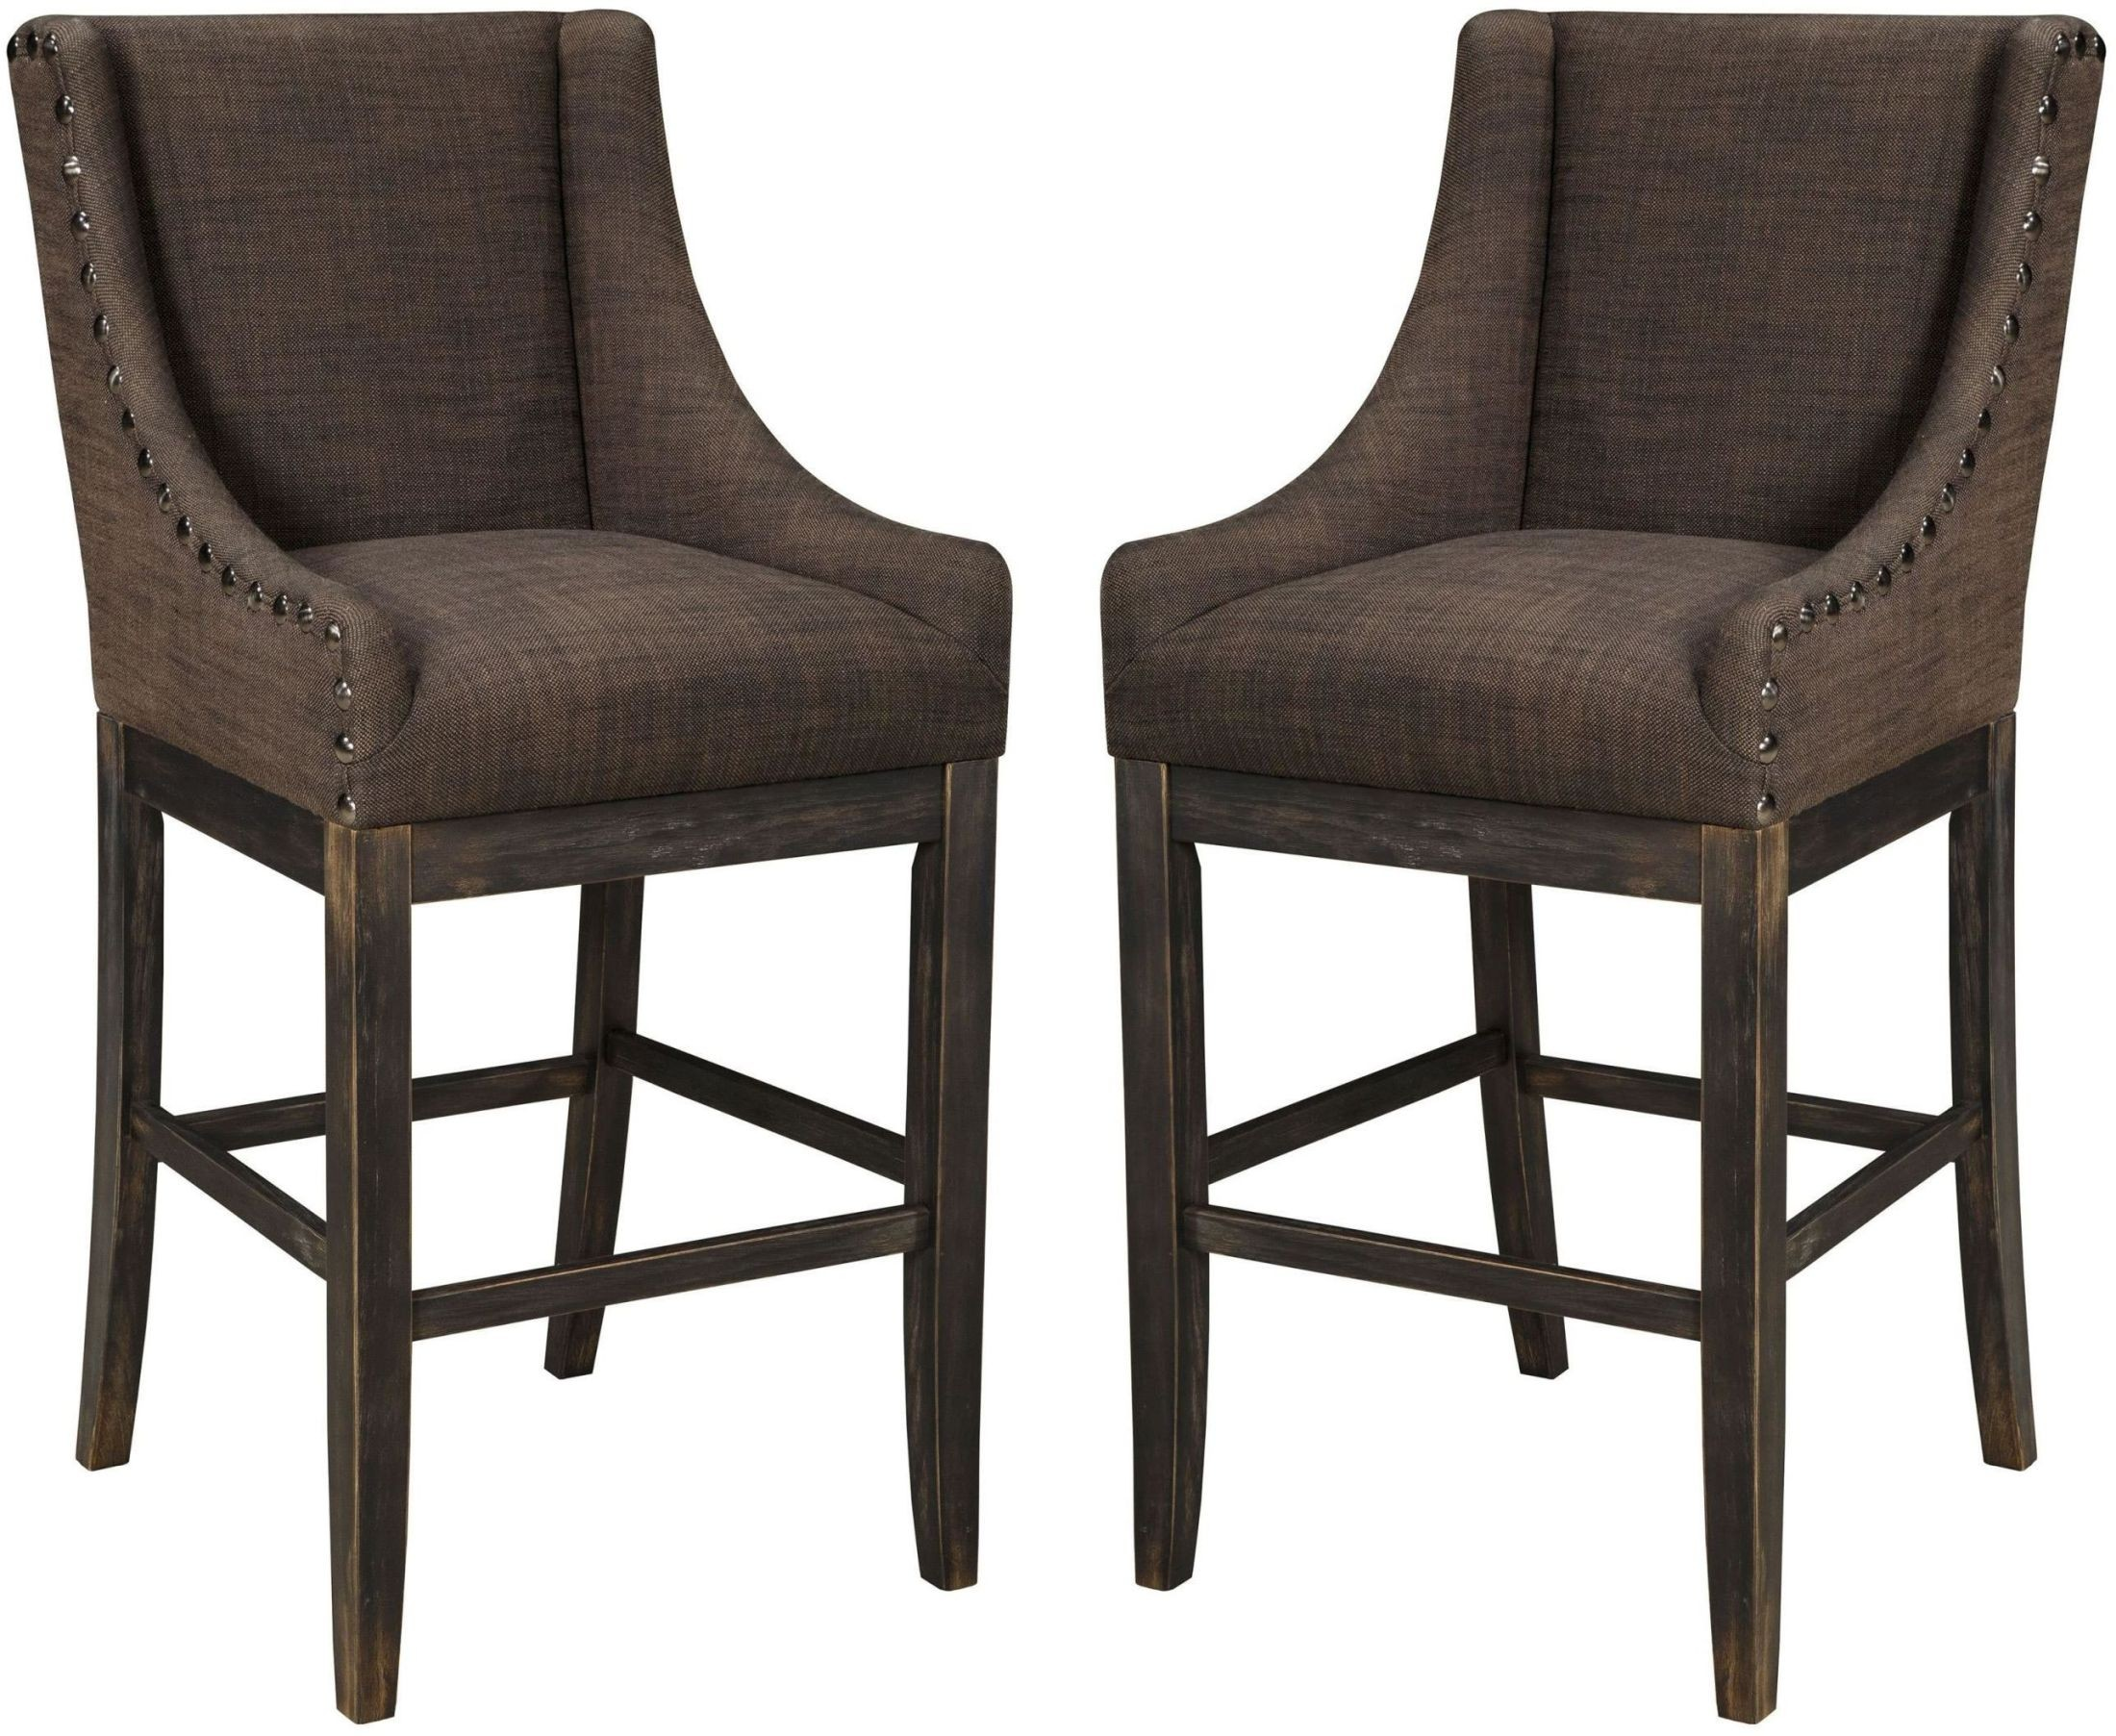 Moriann Dark Brown Tall Upholstered Barstool Set Of 2 From